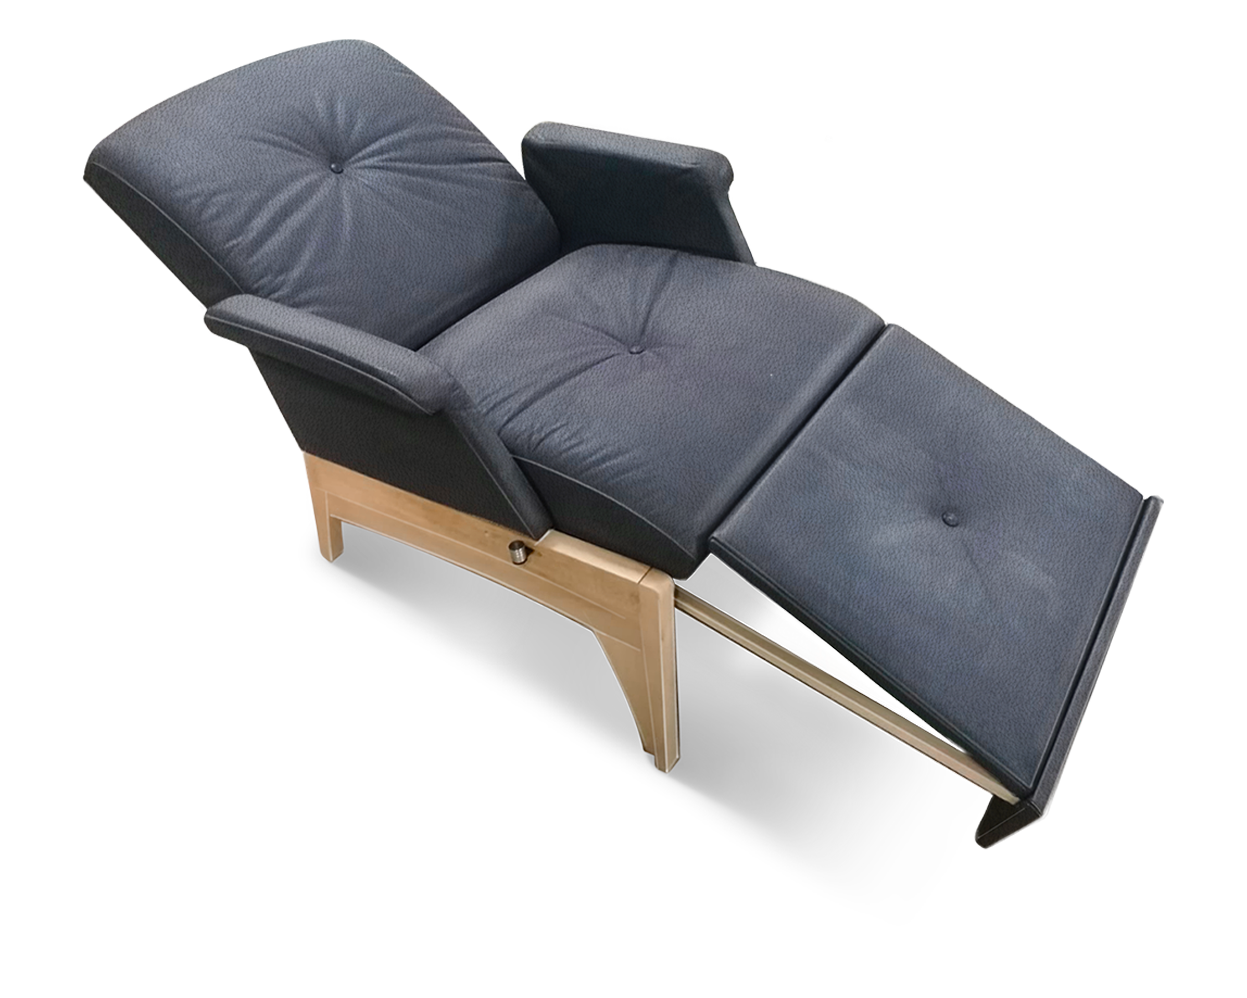 SITO_chaise longue_2